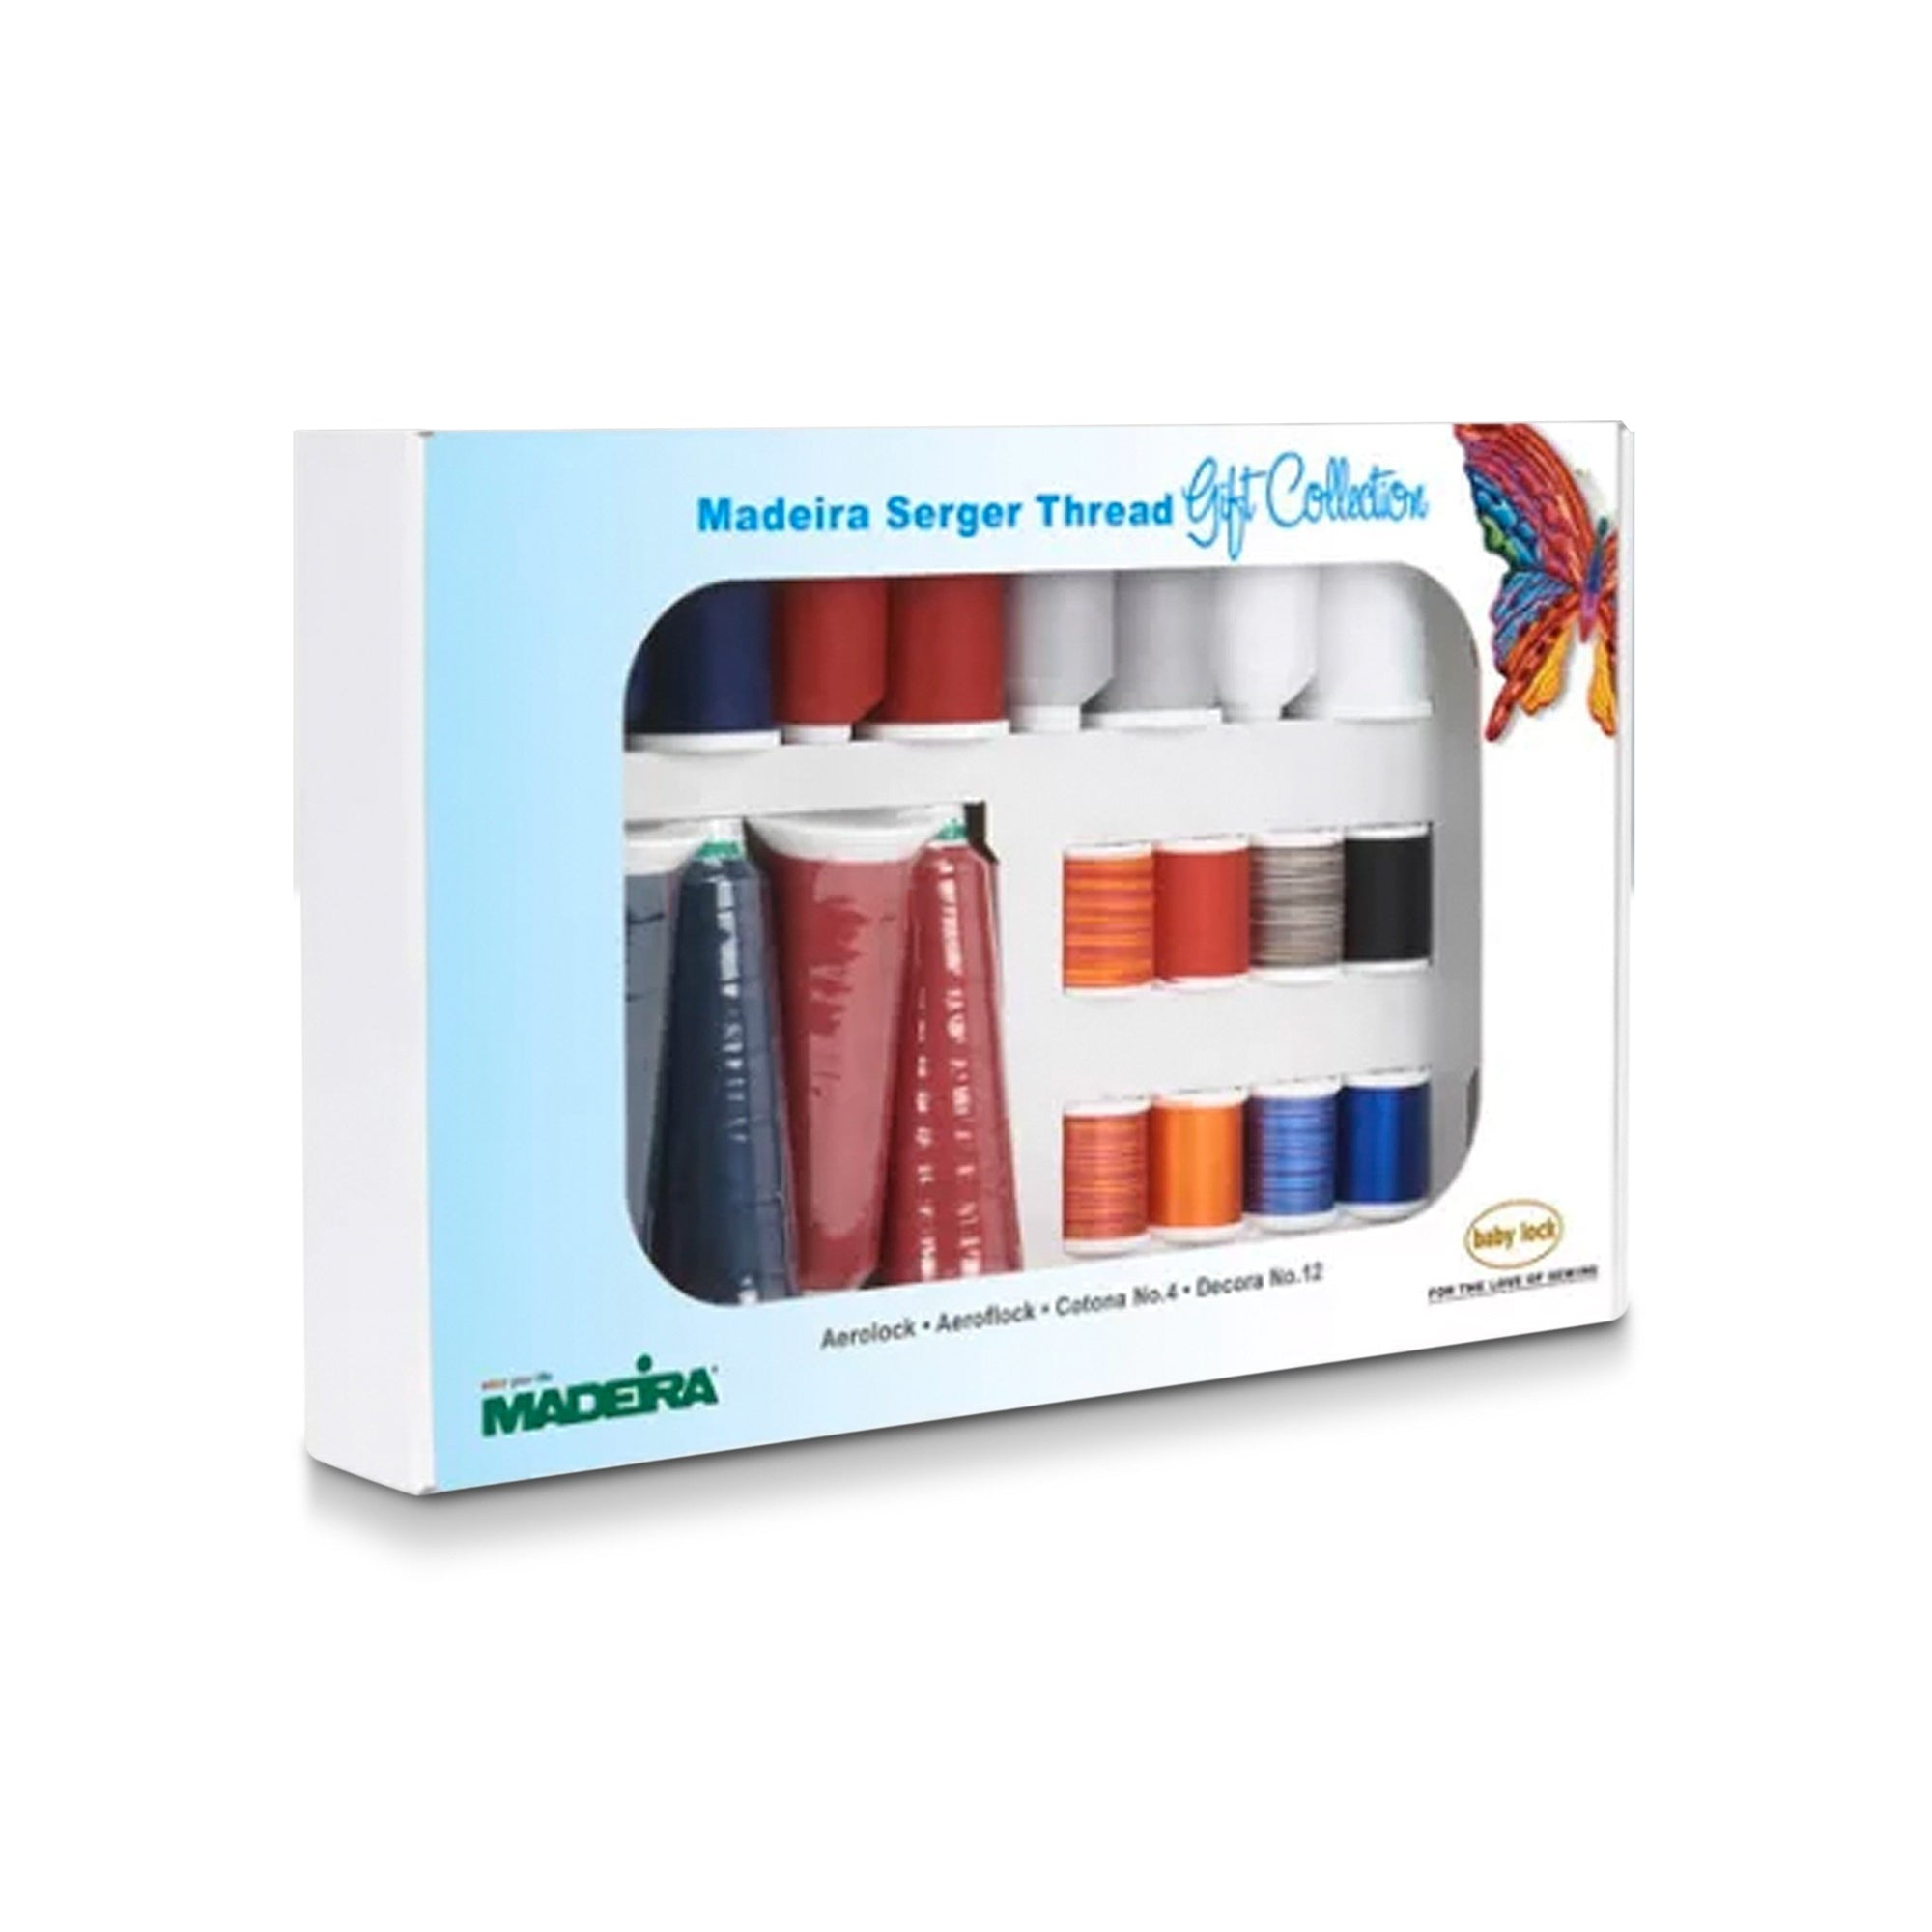 Madeira Serger Thread Kit